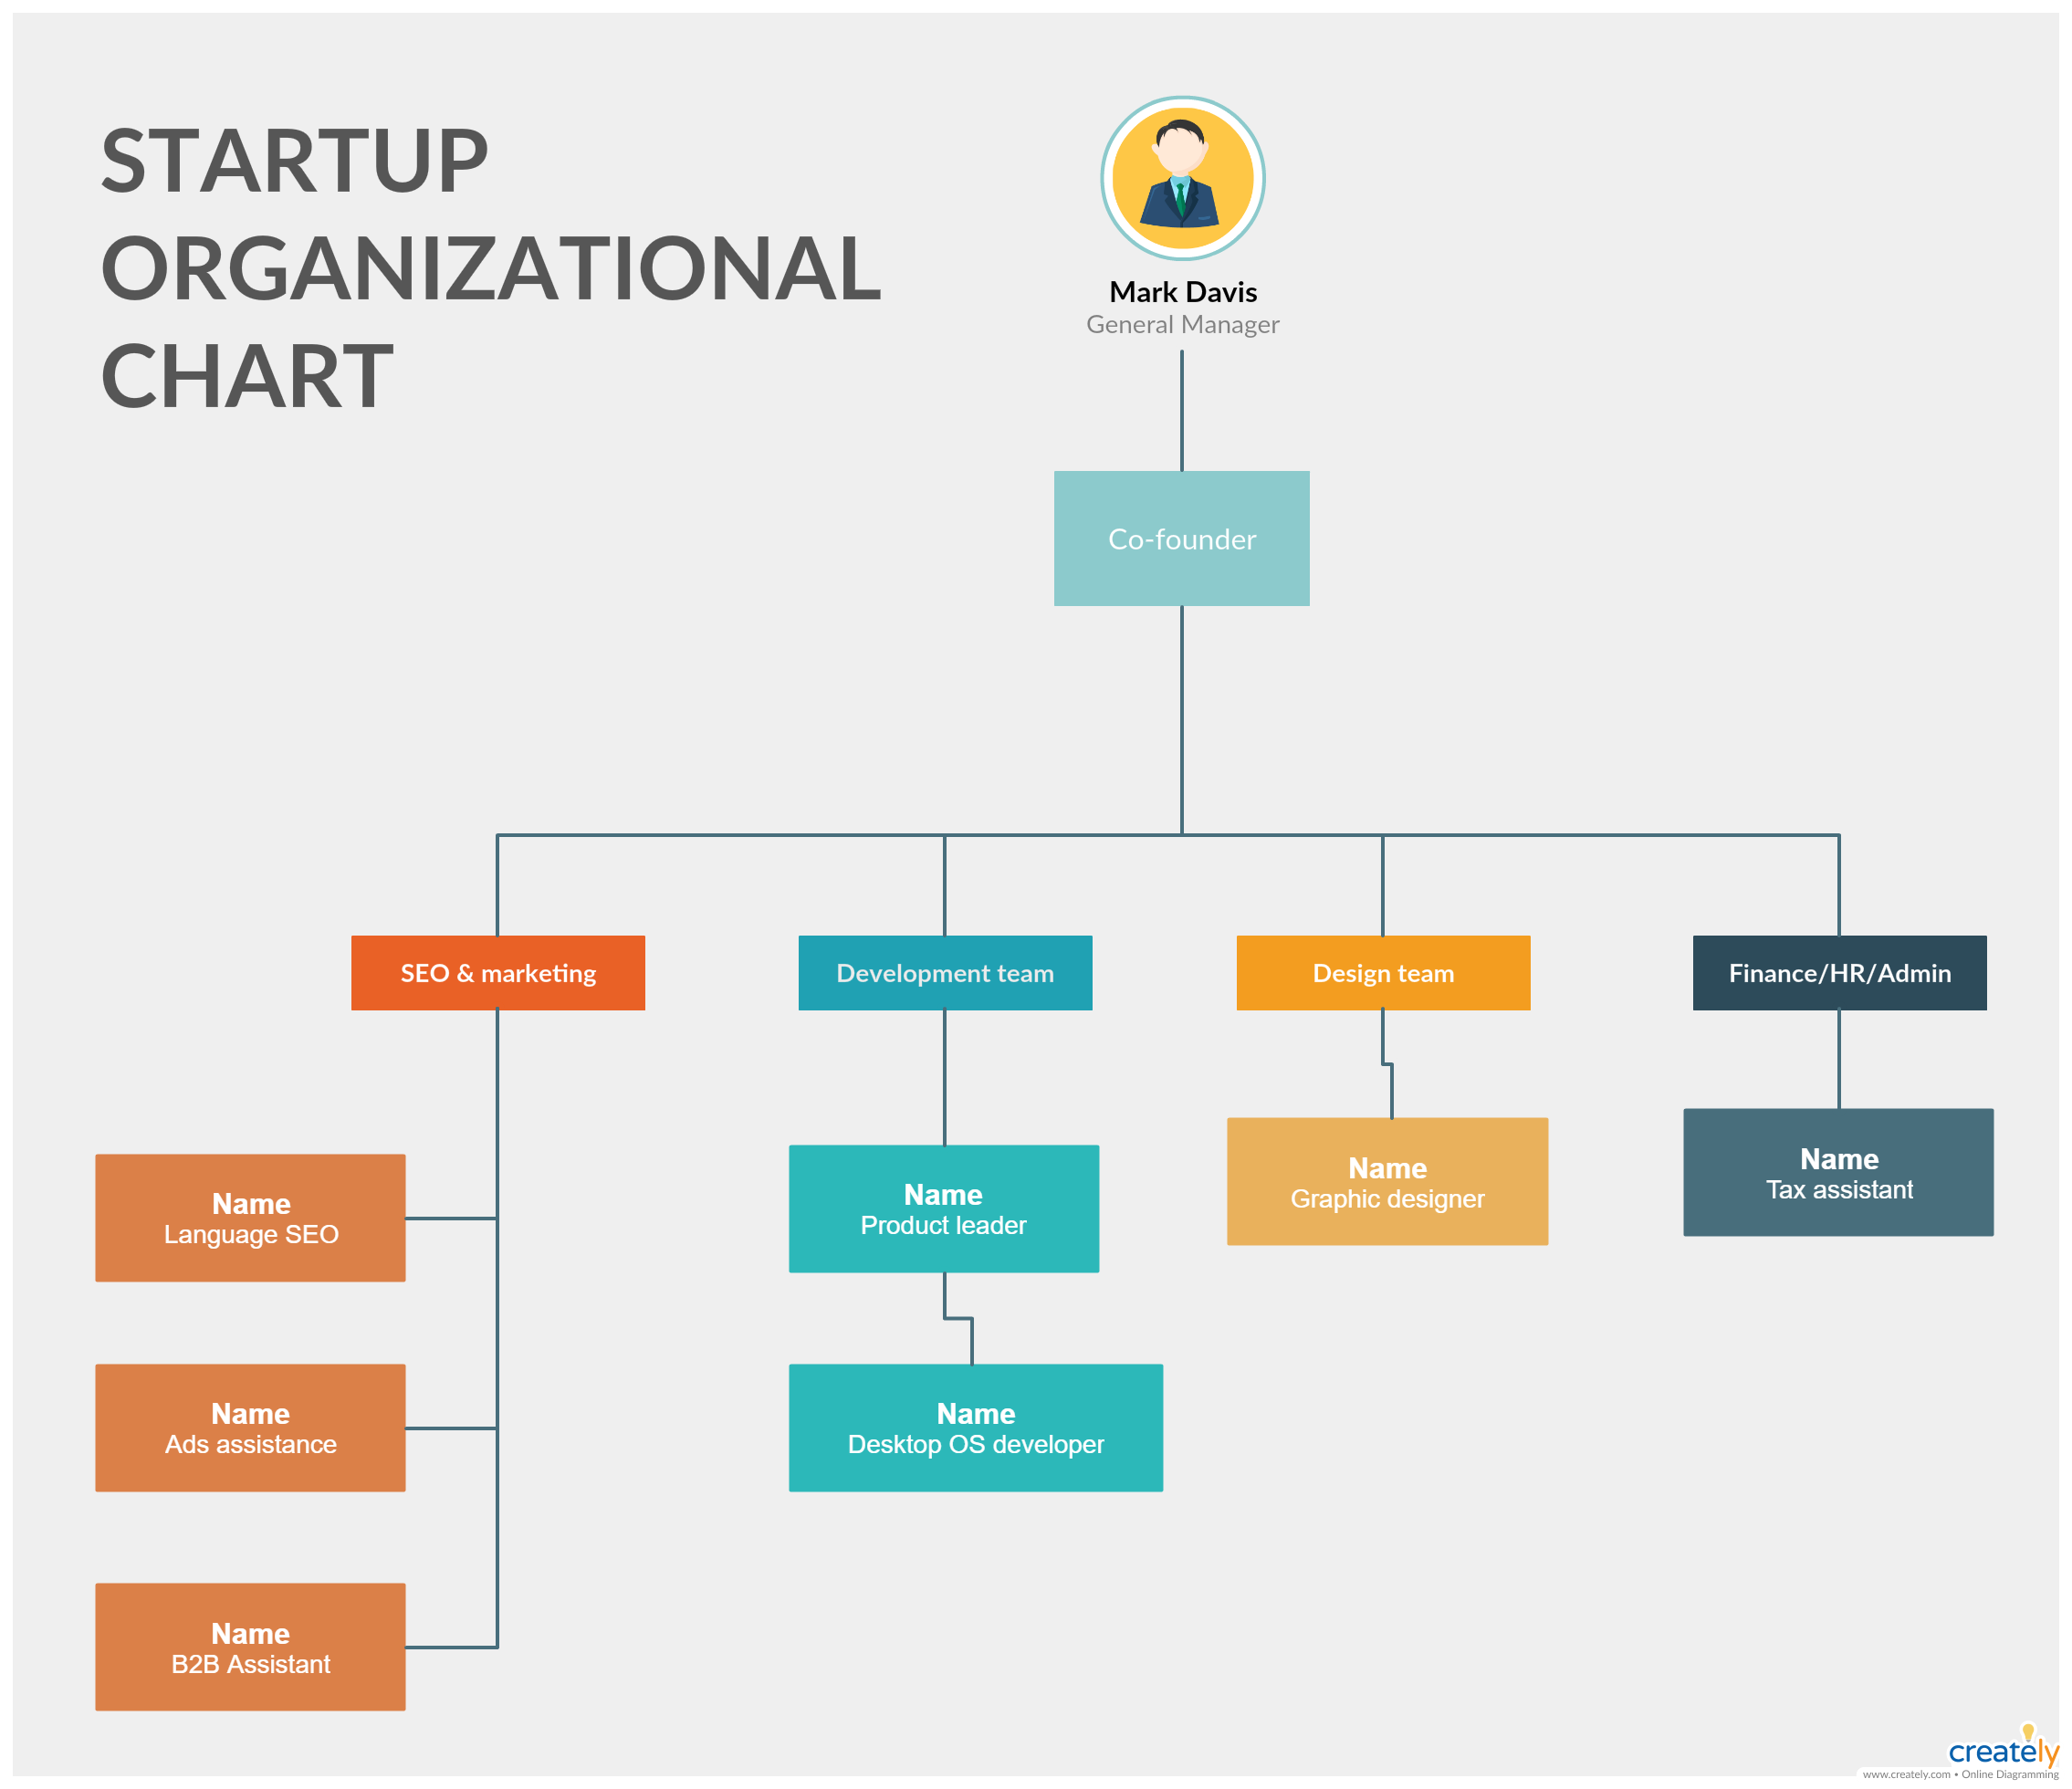 Startup Organizational Chart Template Editable Org For It Company Useful Technology Companies And Tech Startups